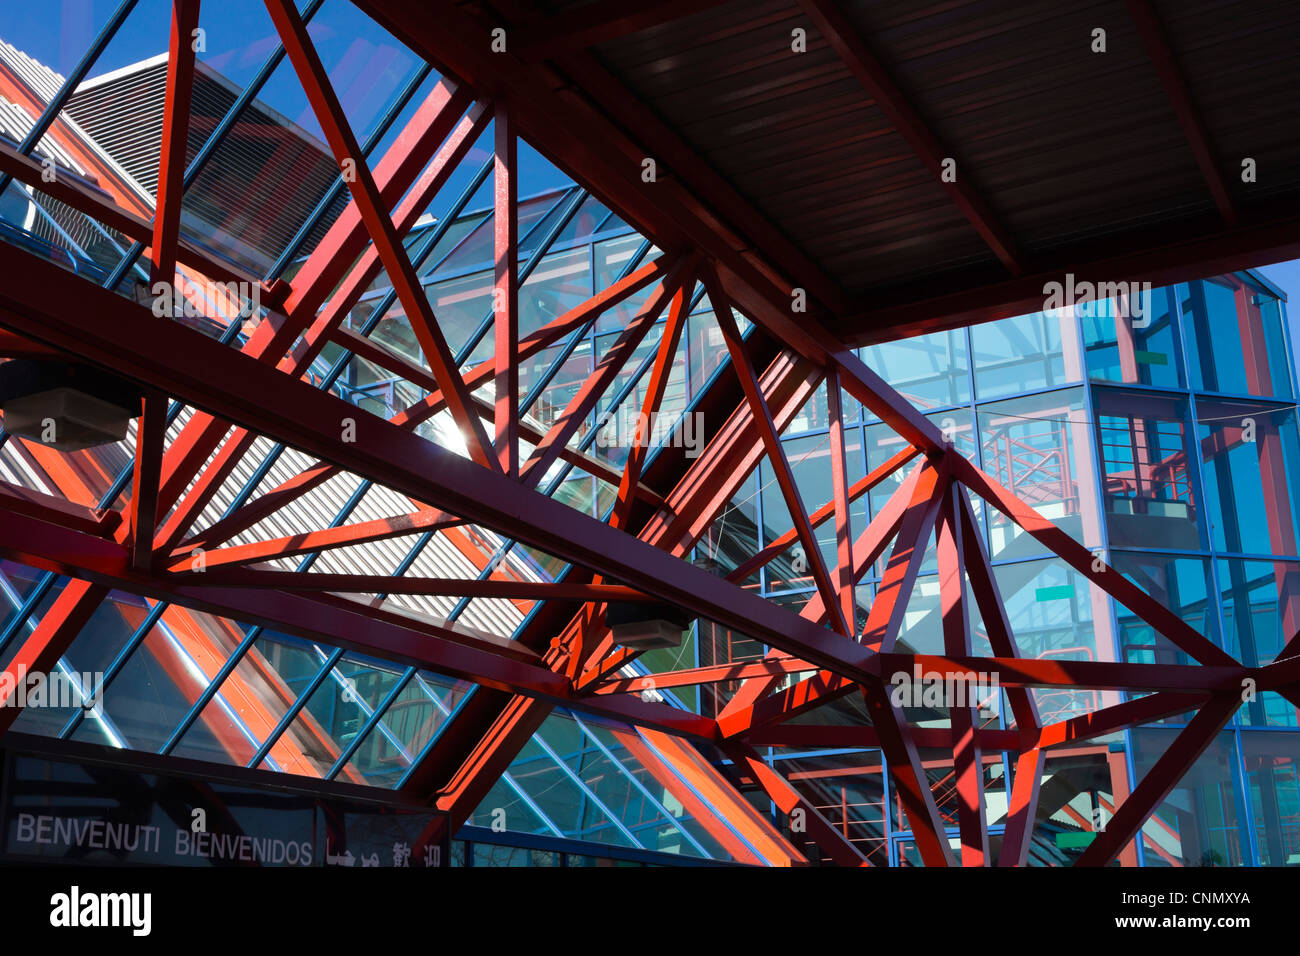 National Exhibition Centre, Birmingham, UK Structural steelwork and glazing. - Stock Image